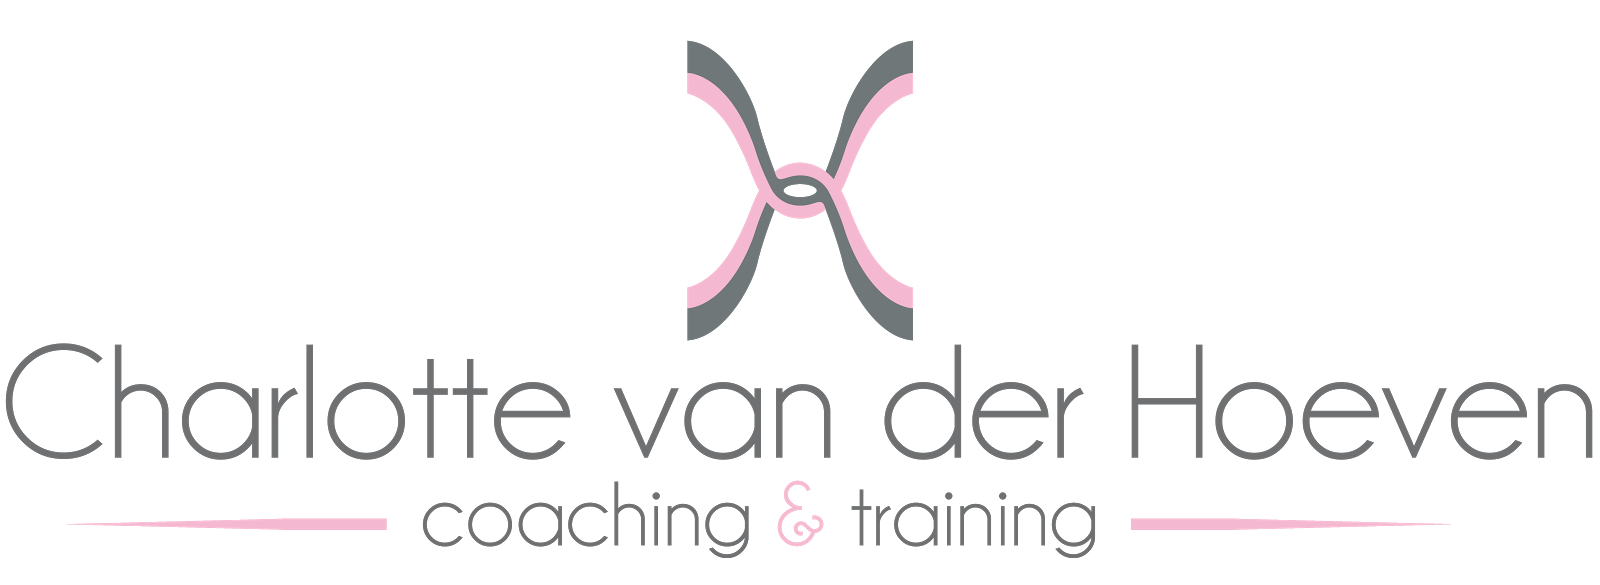 Charlotte van der Hoeven, Coaching en Training